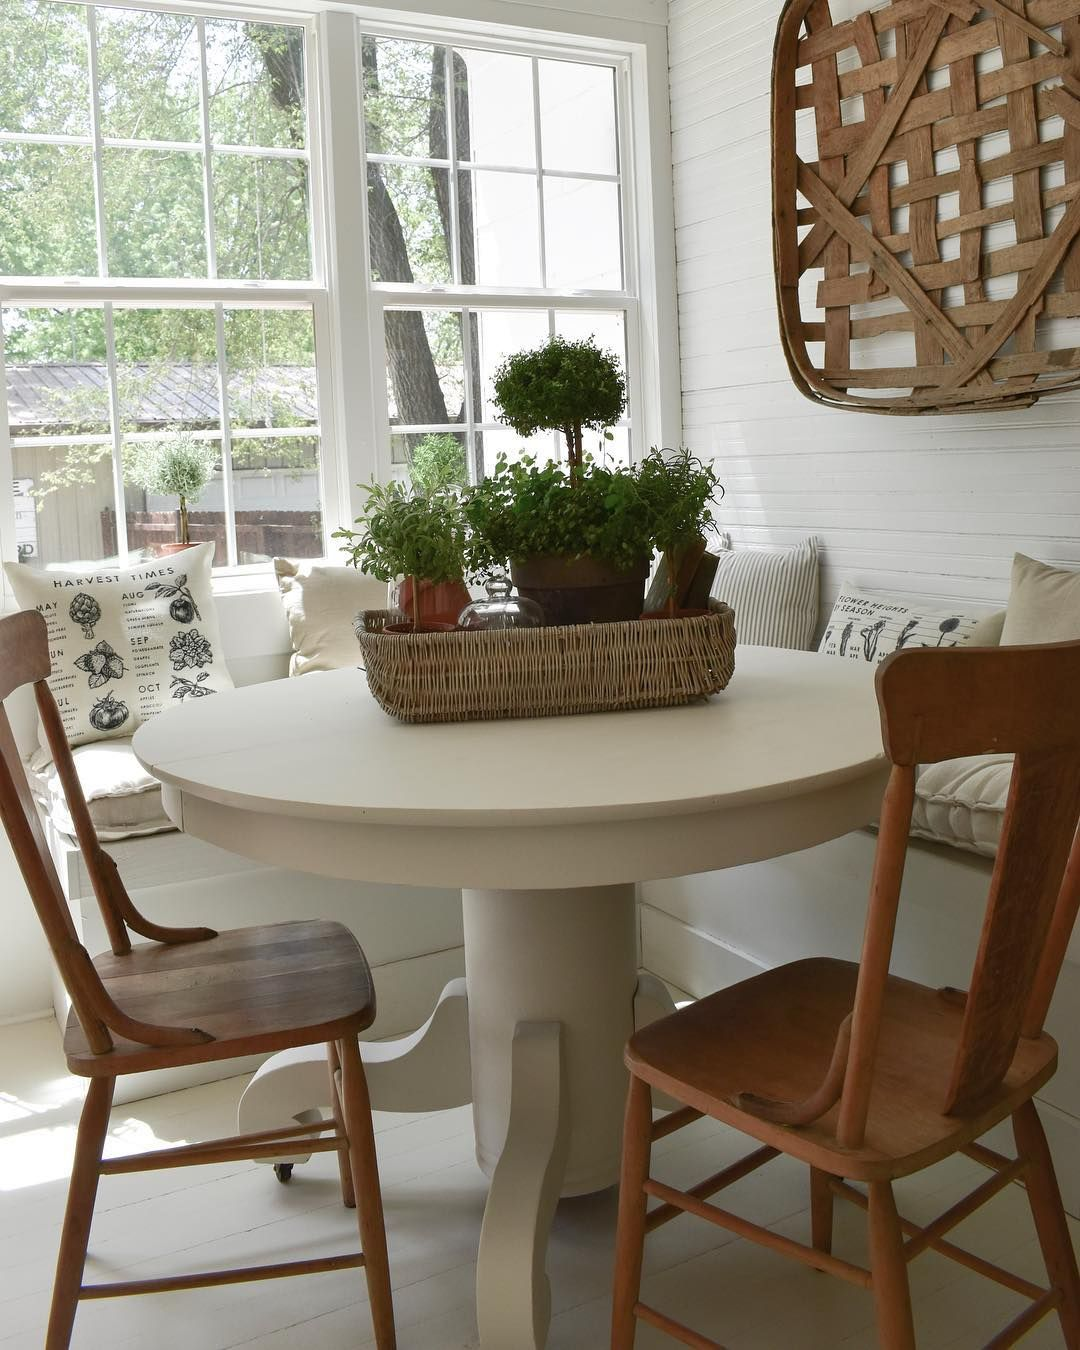 kitche chic dining room eclectic dining room dining room essentials on boho chic dining room kitchen dining tables id=98997